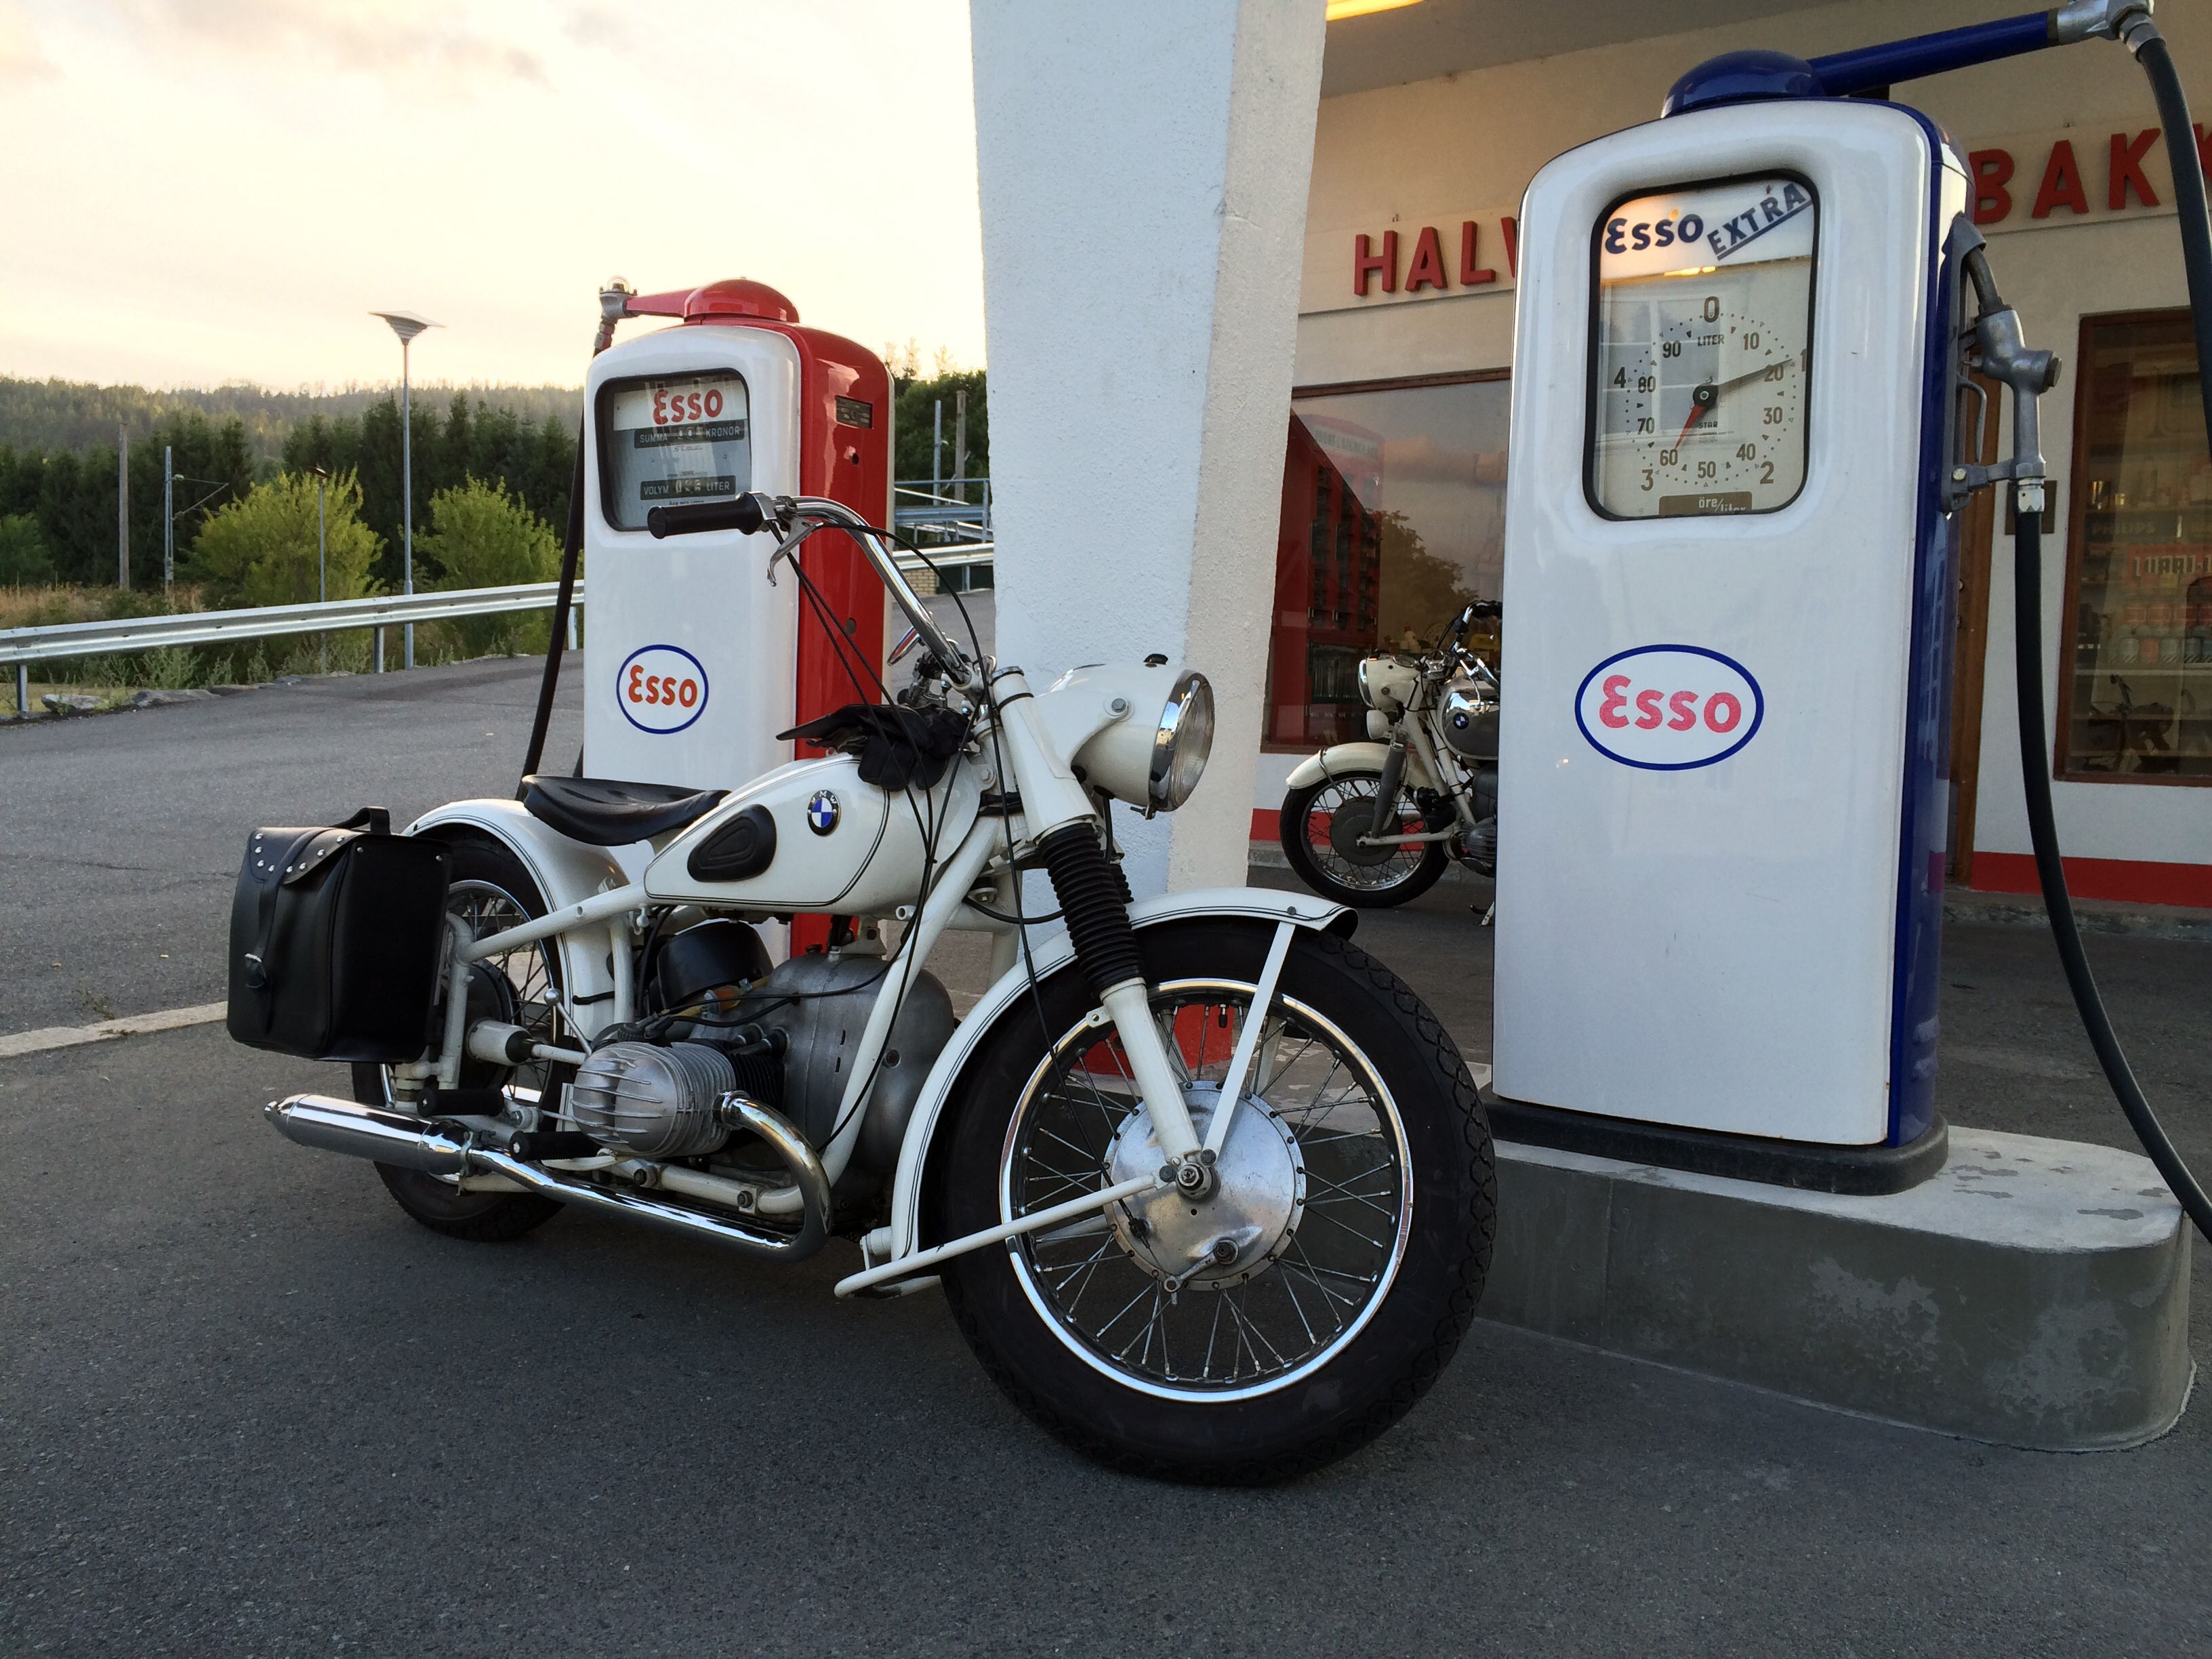 Vintage BMW R67 from 1951